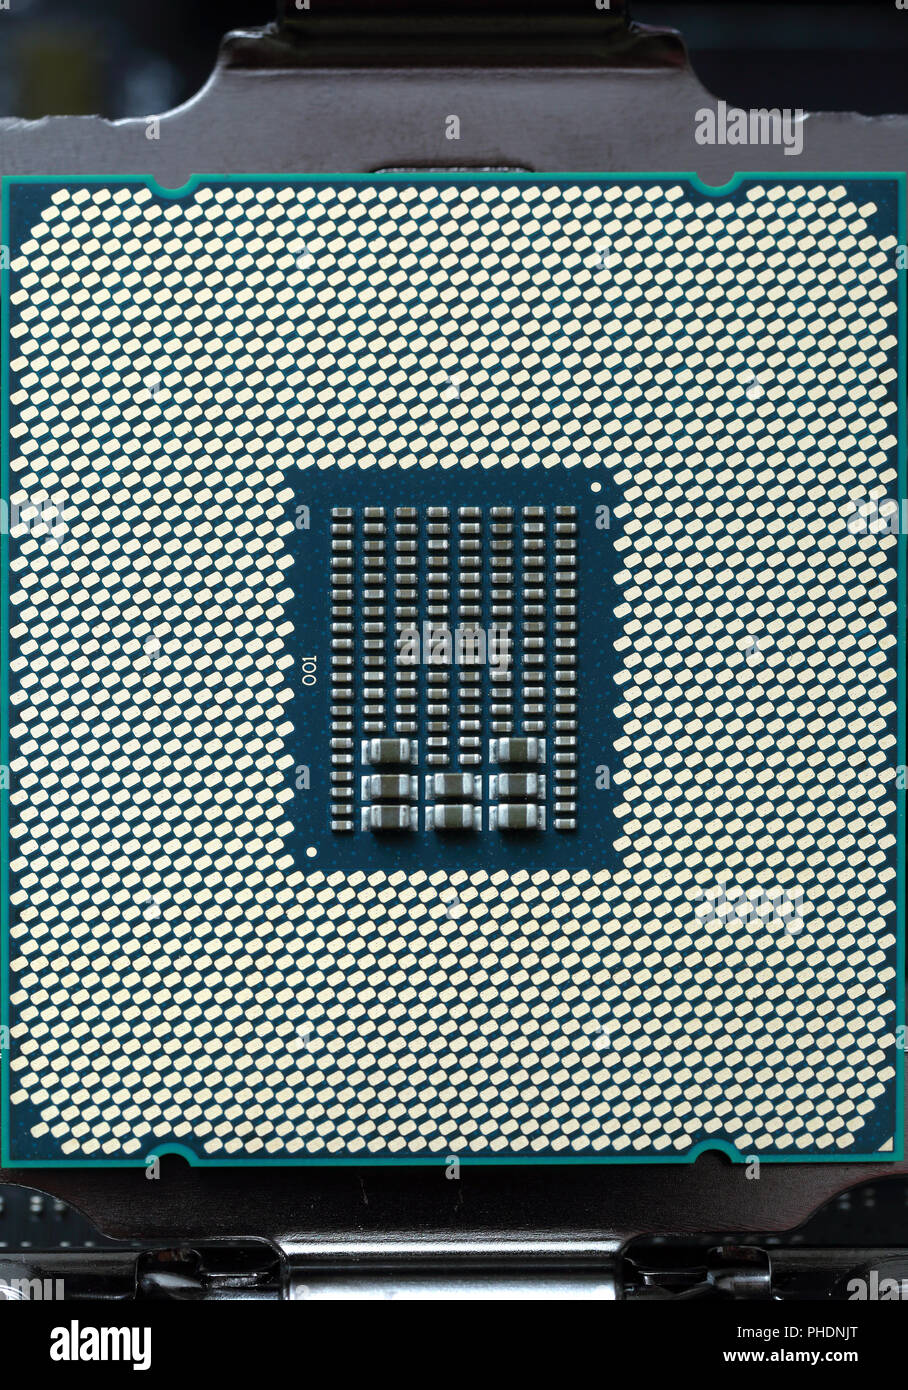 modern cpu computer chip - Stock Image